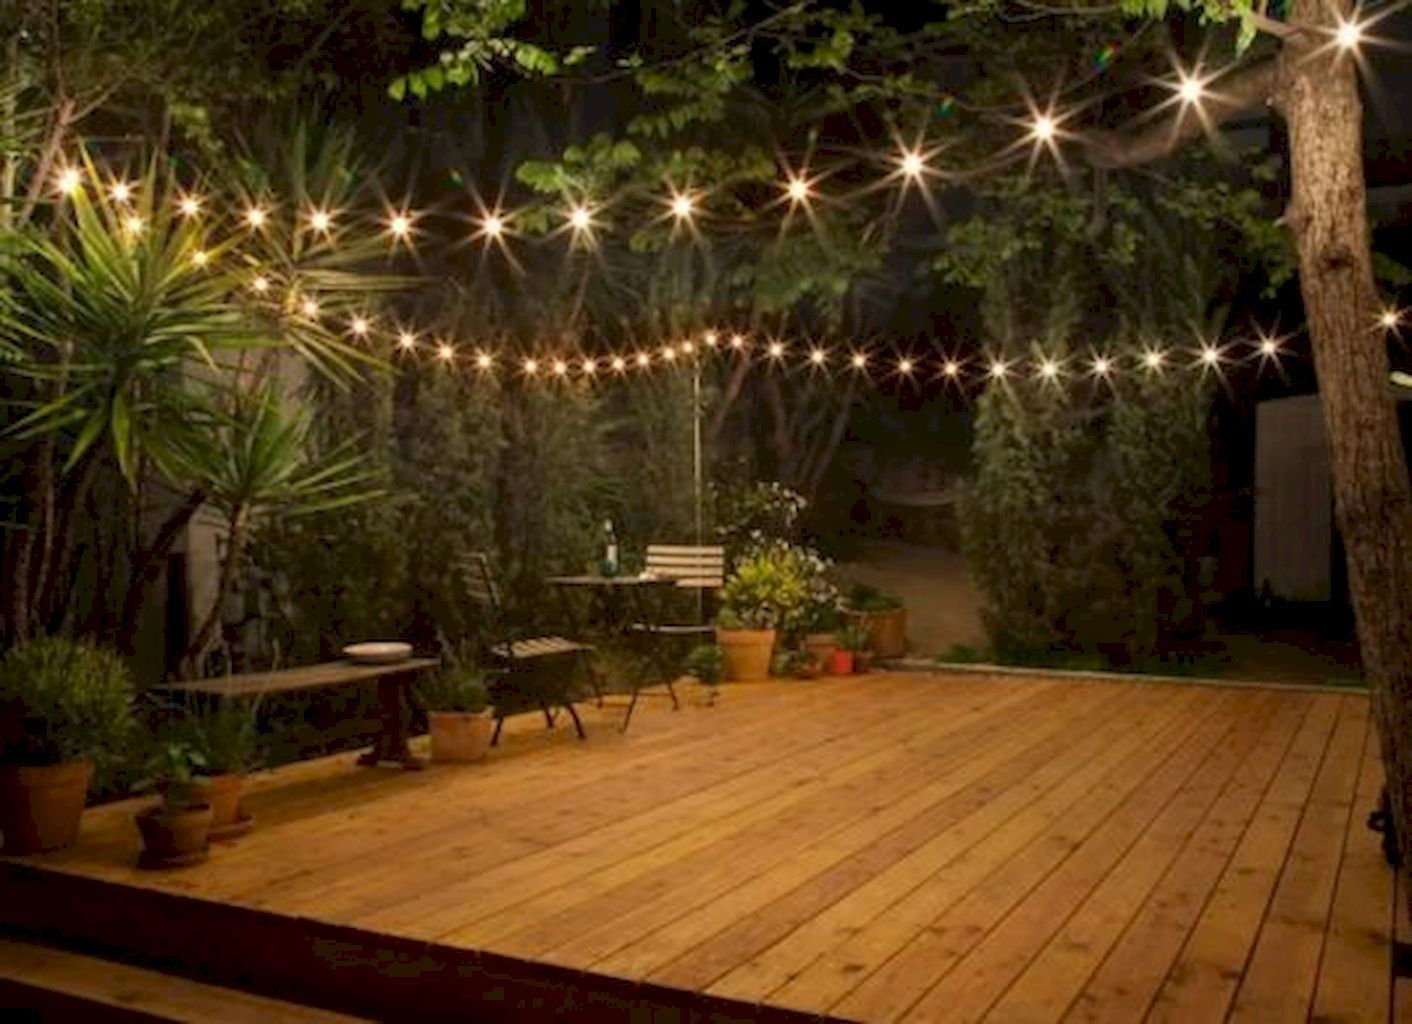 Pin by The Article Home Gardening on Backyard Garden | Pinterest ...